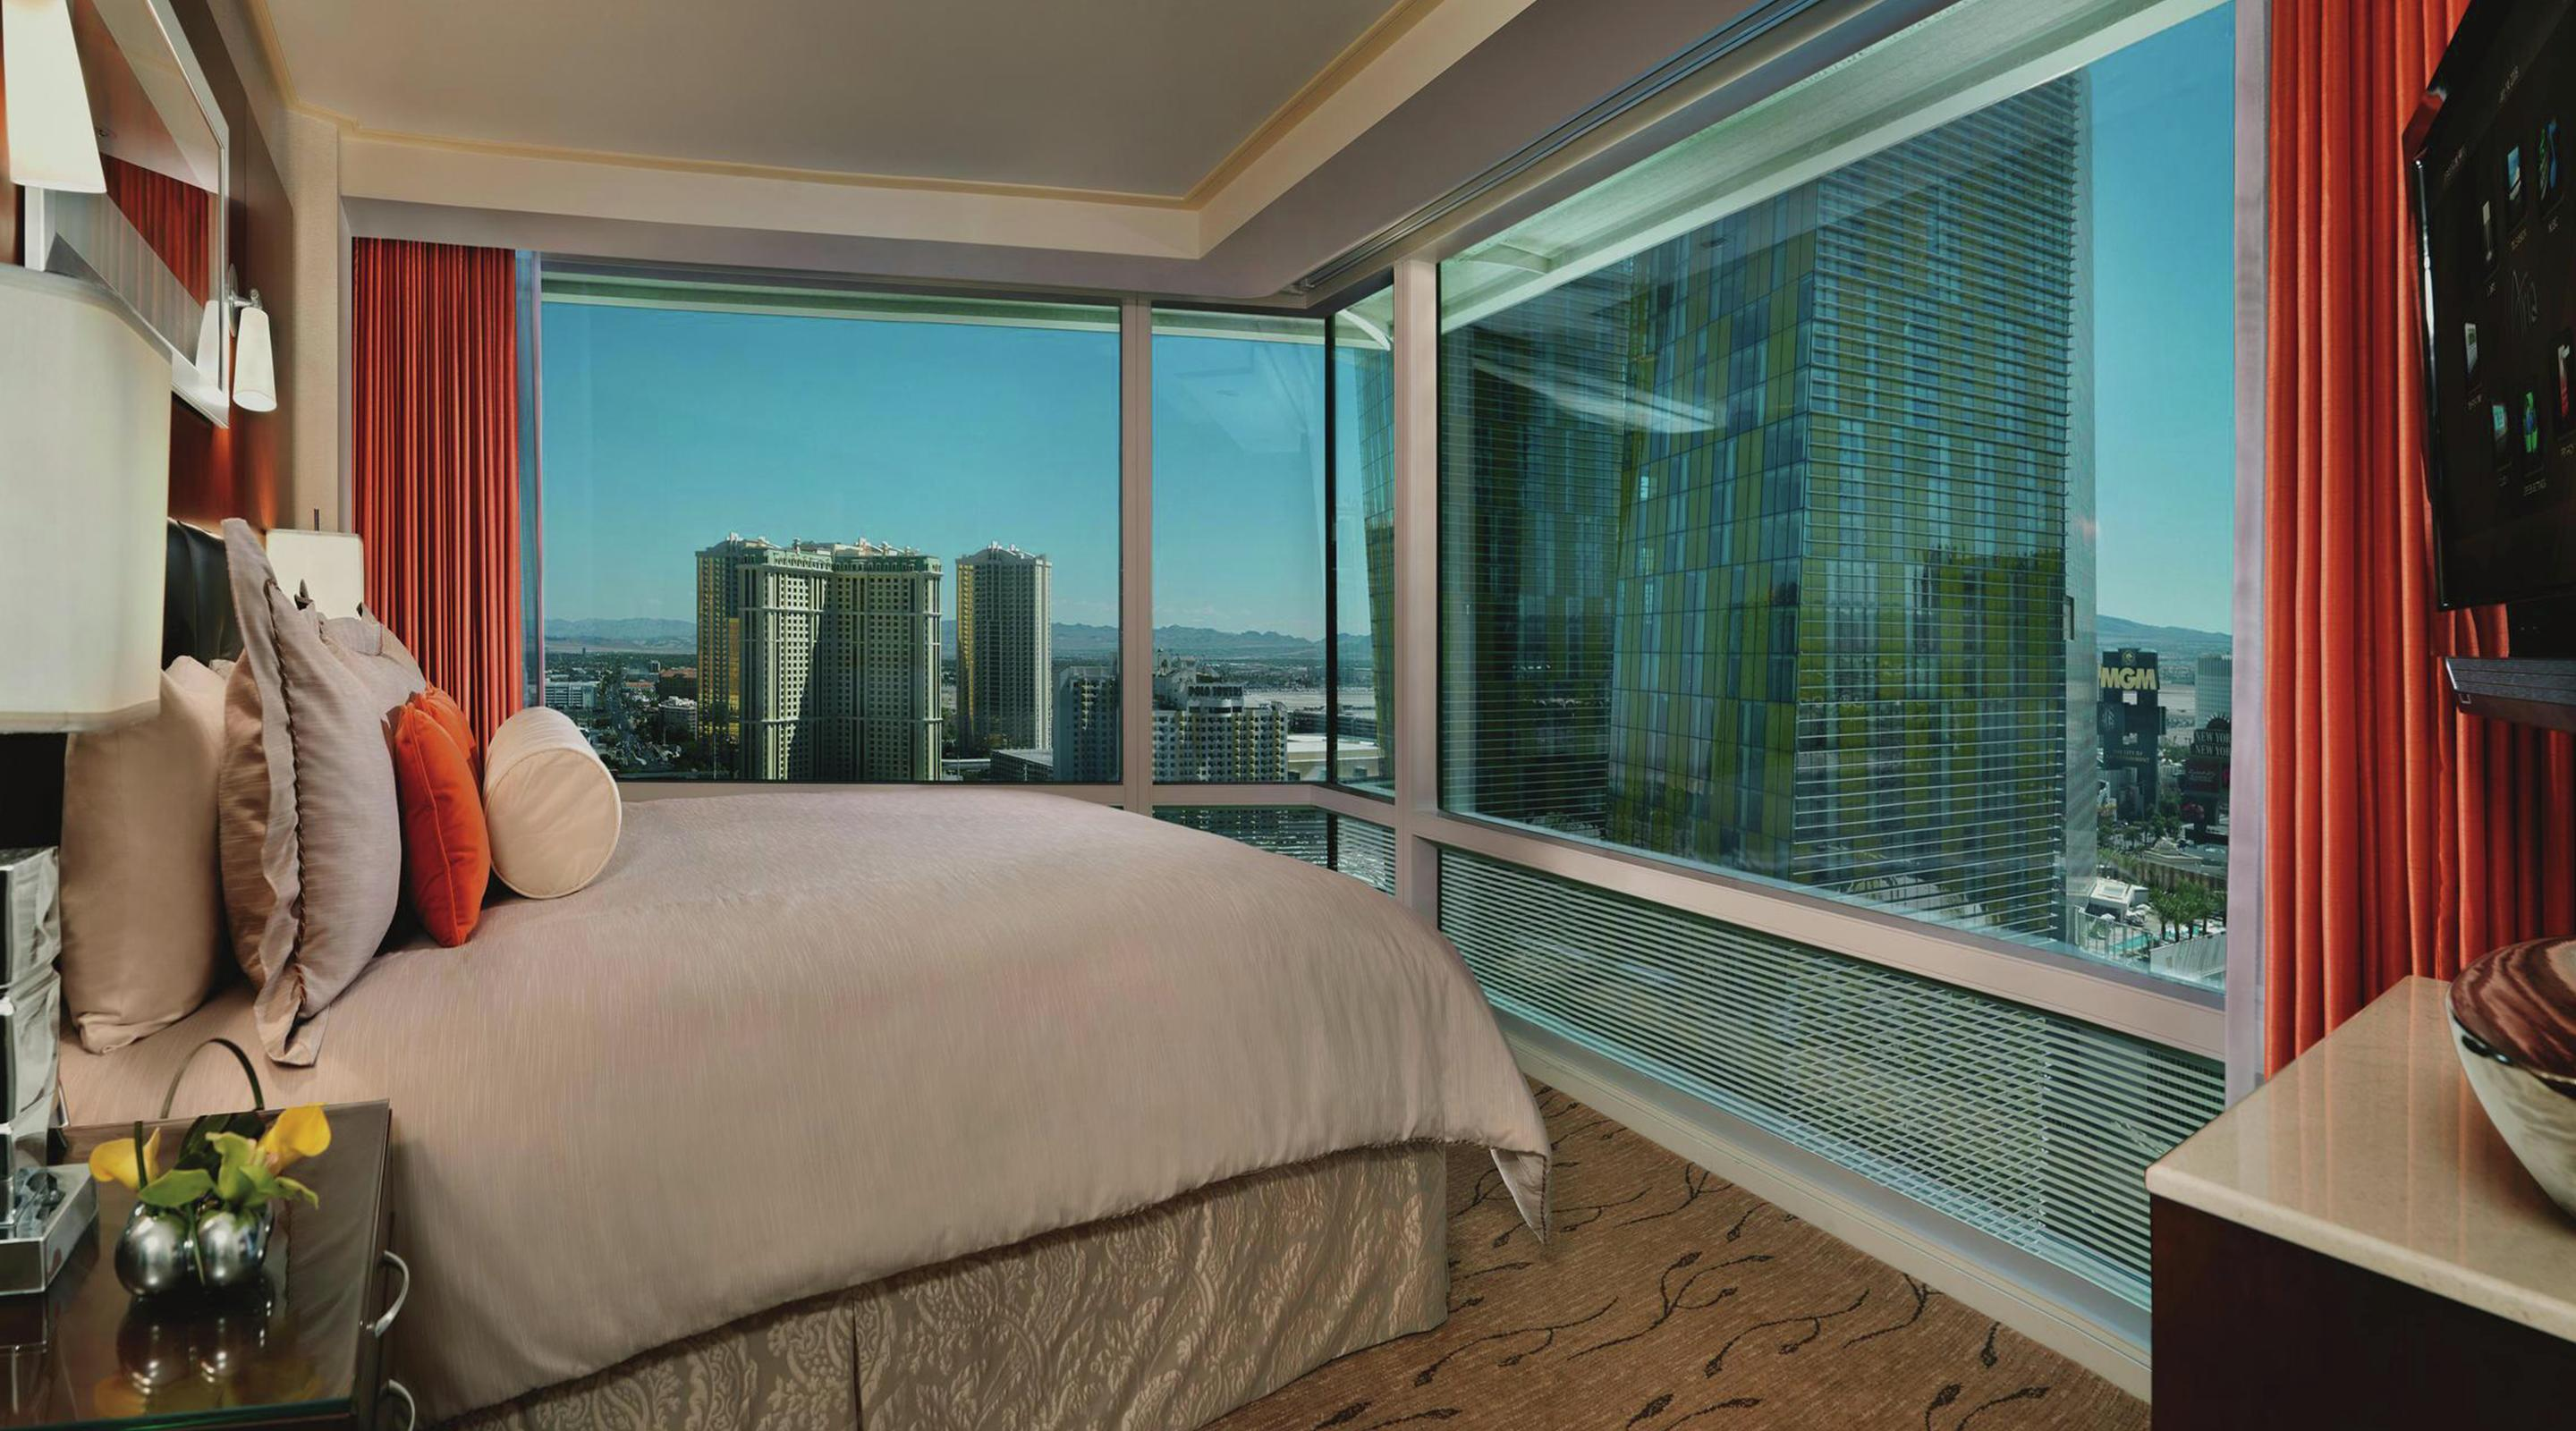 Averaging 920 square feet, our Corner Suite has it all. ARIA graces guests with separate, yet equally sophisticated, living and bedroom spaces, each with its own unique, awe-inspiring views of both the mountainous horizon or The Strip.